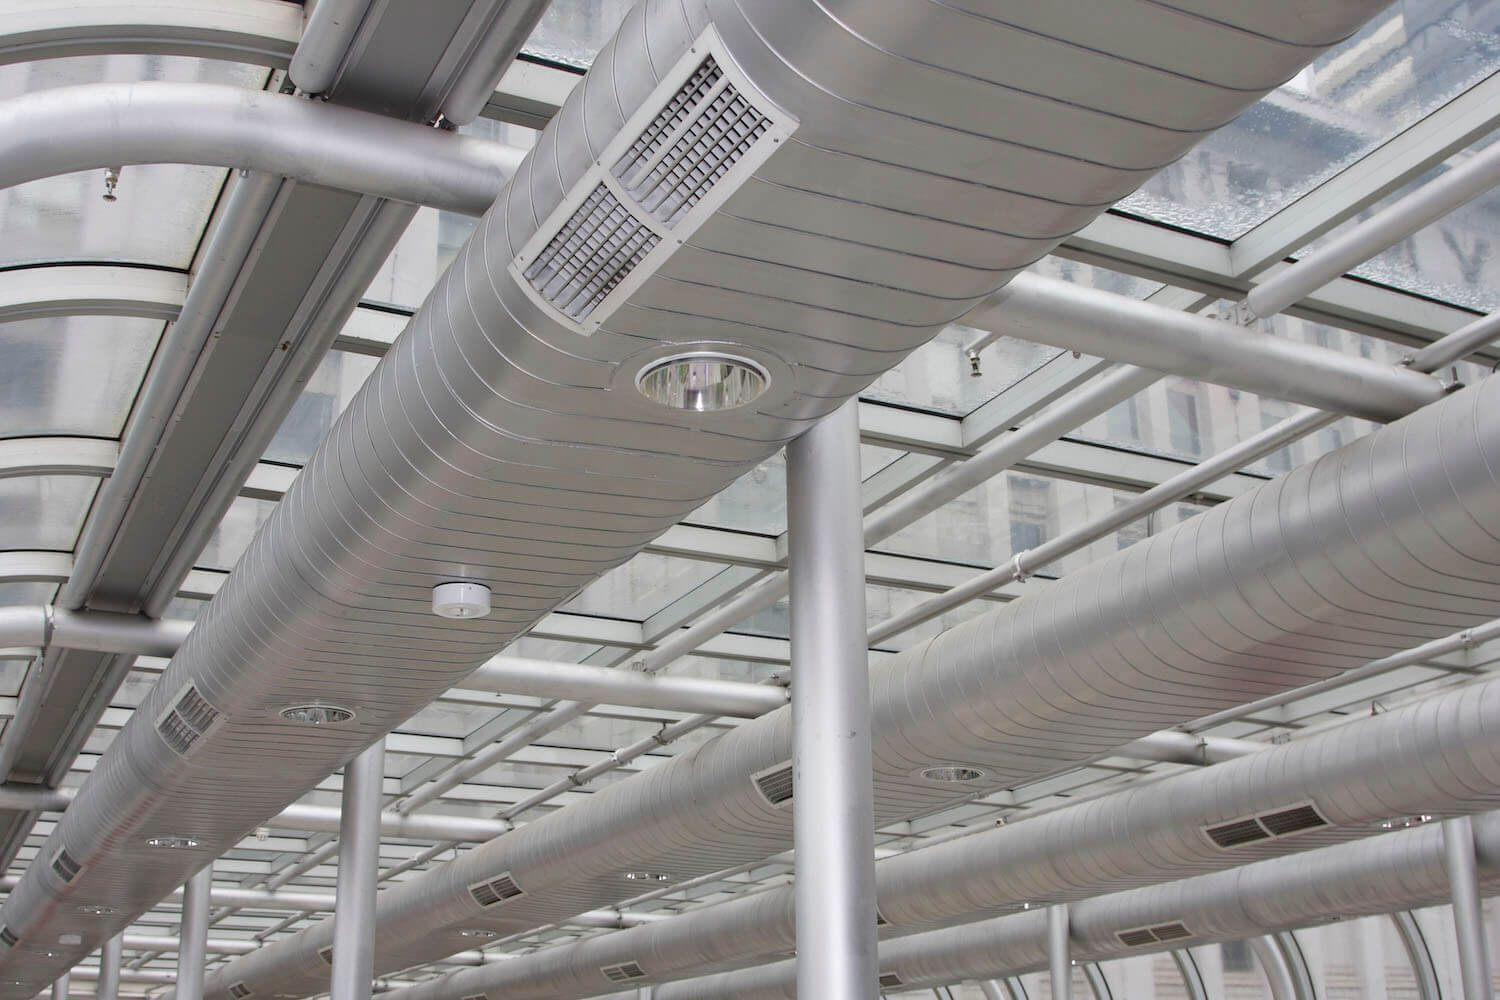 Is Duct Cleaning a Complete Waste of Money? in 2020 Air